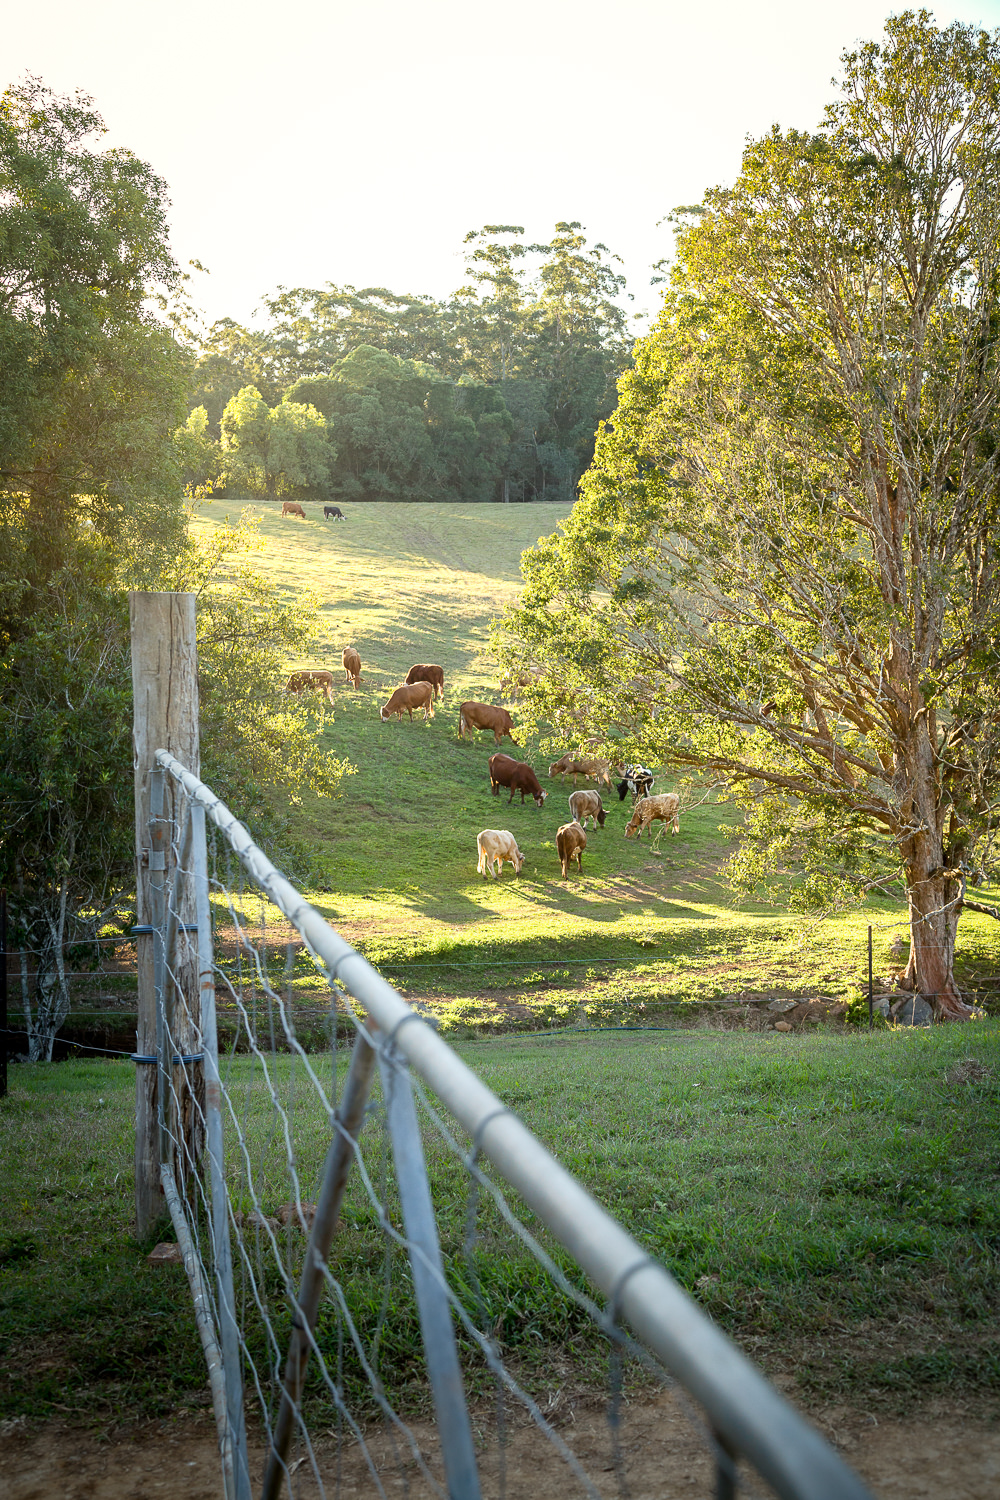 Gold_Coast_Hinterland_Barn_Wedding_Cowbell_Creek_Farm_True_North_Photography-6.jpg